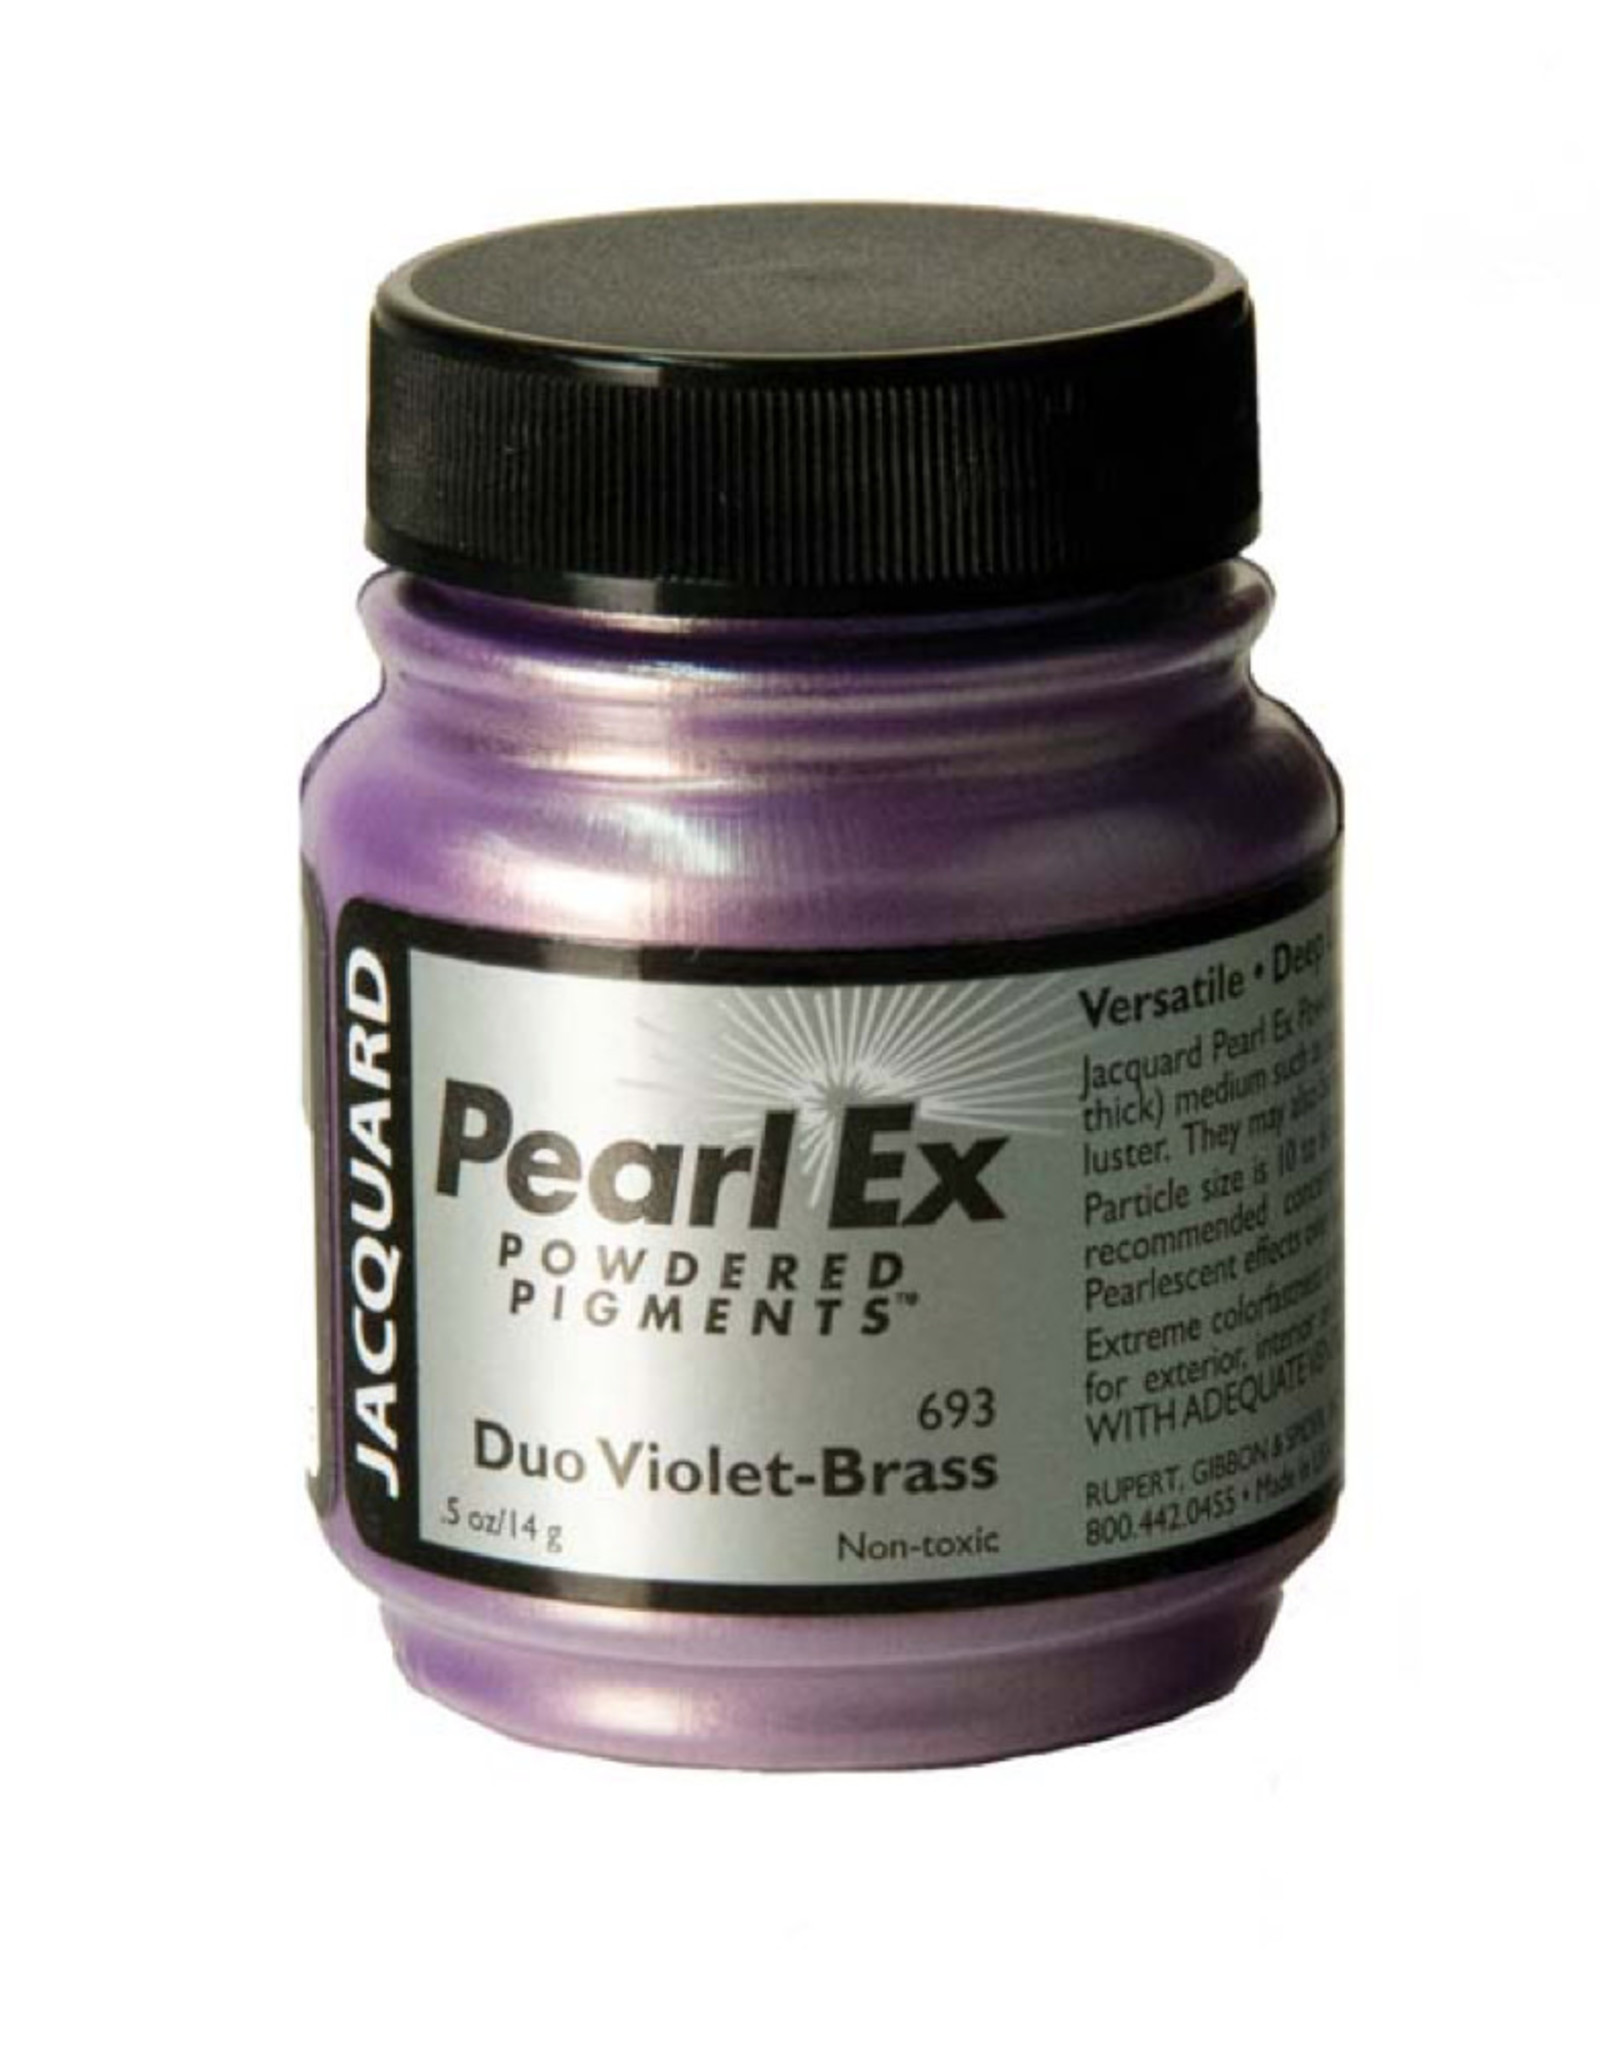 Jacquard Pearl Ex Duo Violet Brass